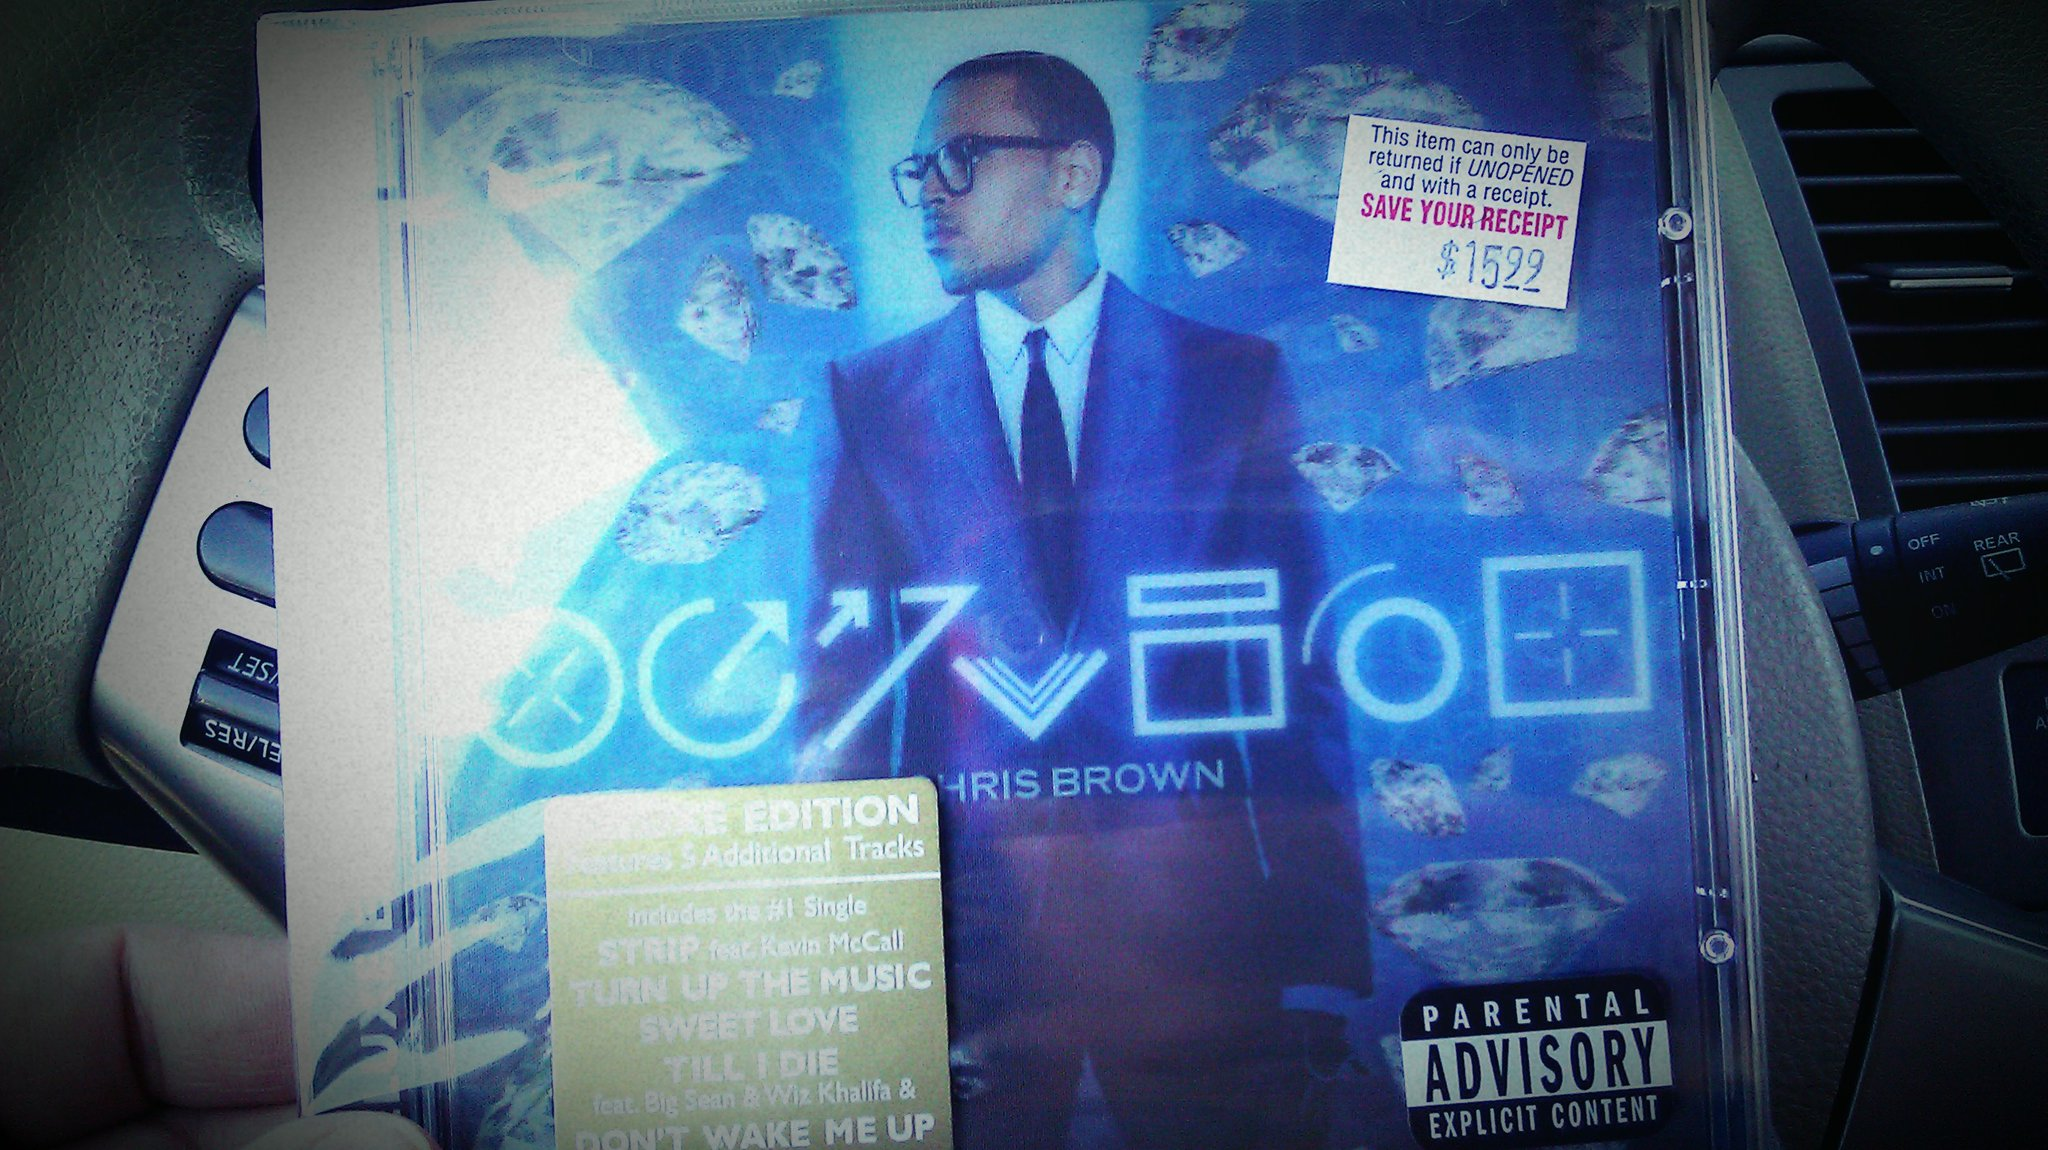 RT @msnani71: #TeamBreezyMom ! @chrisbrown ! http://t.co/loEJauSG